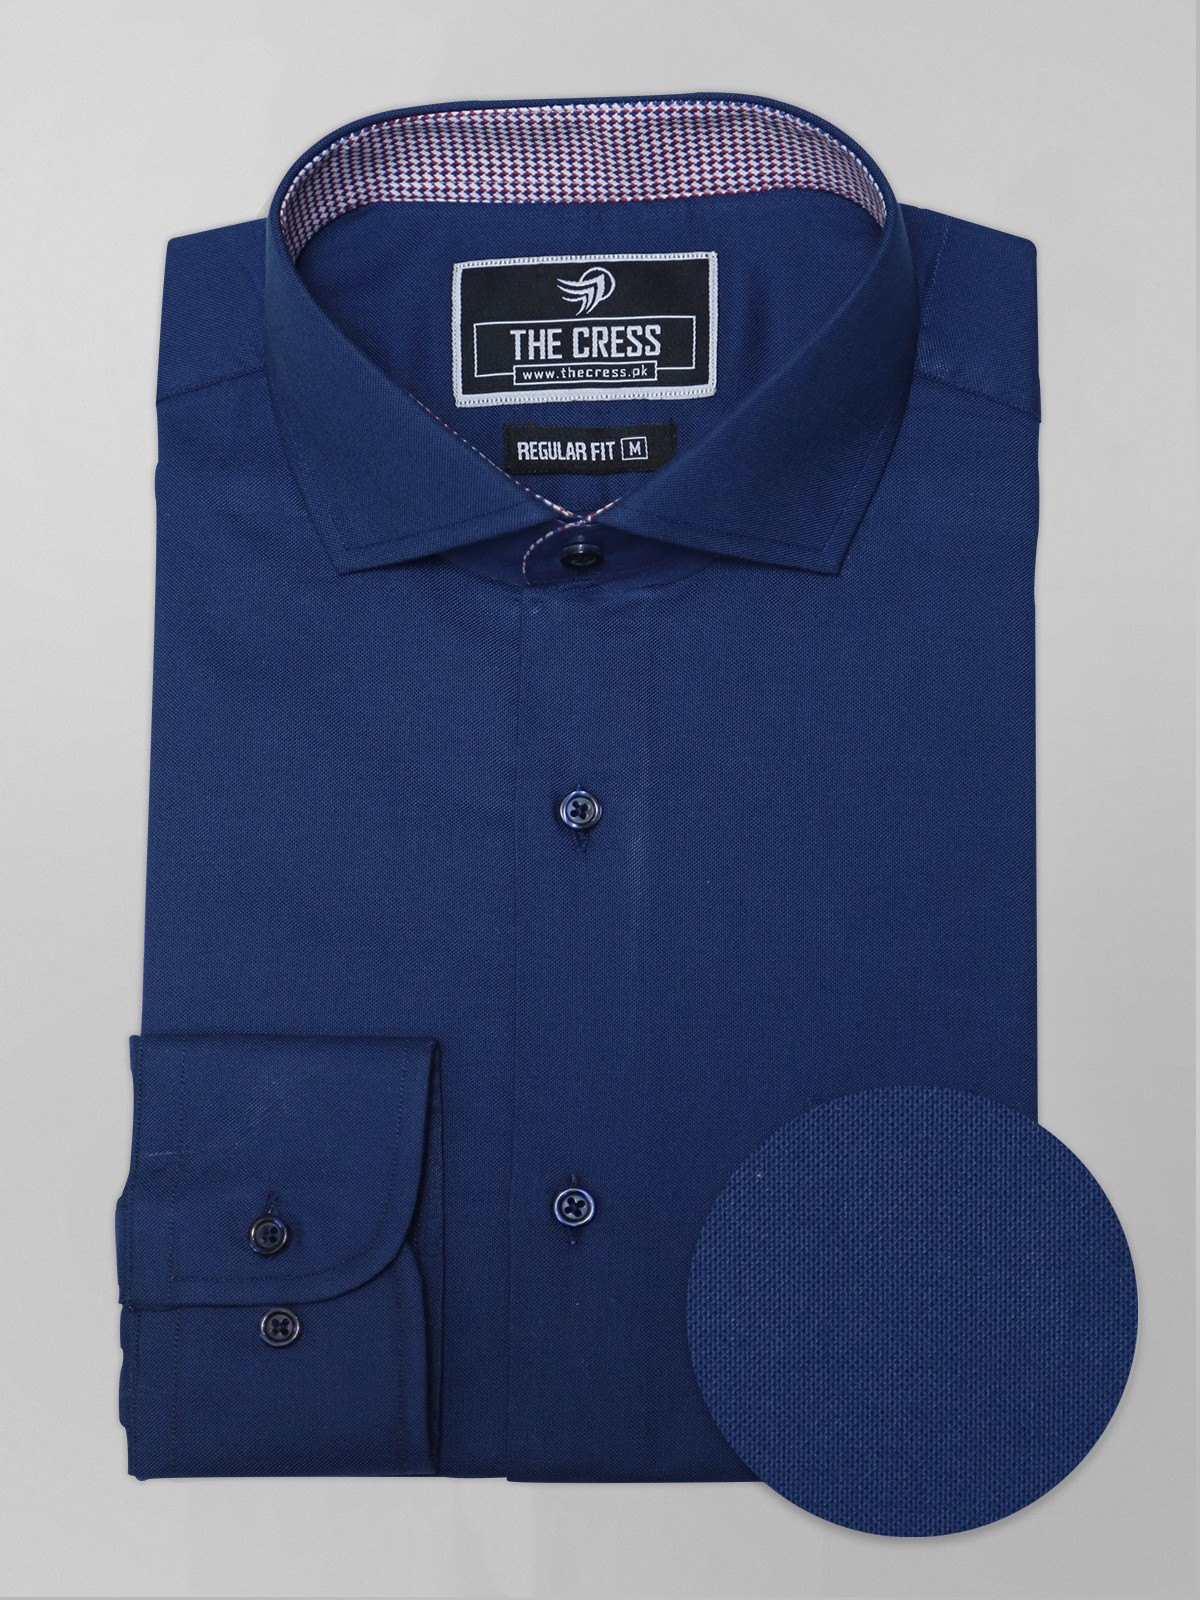 blue semi-formal shirt